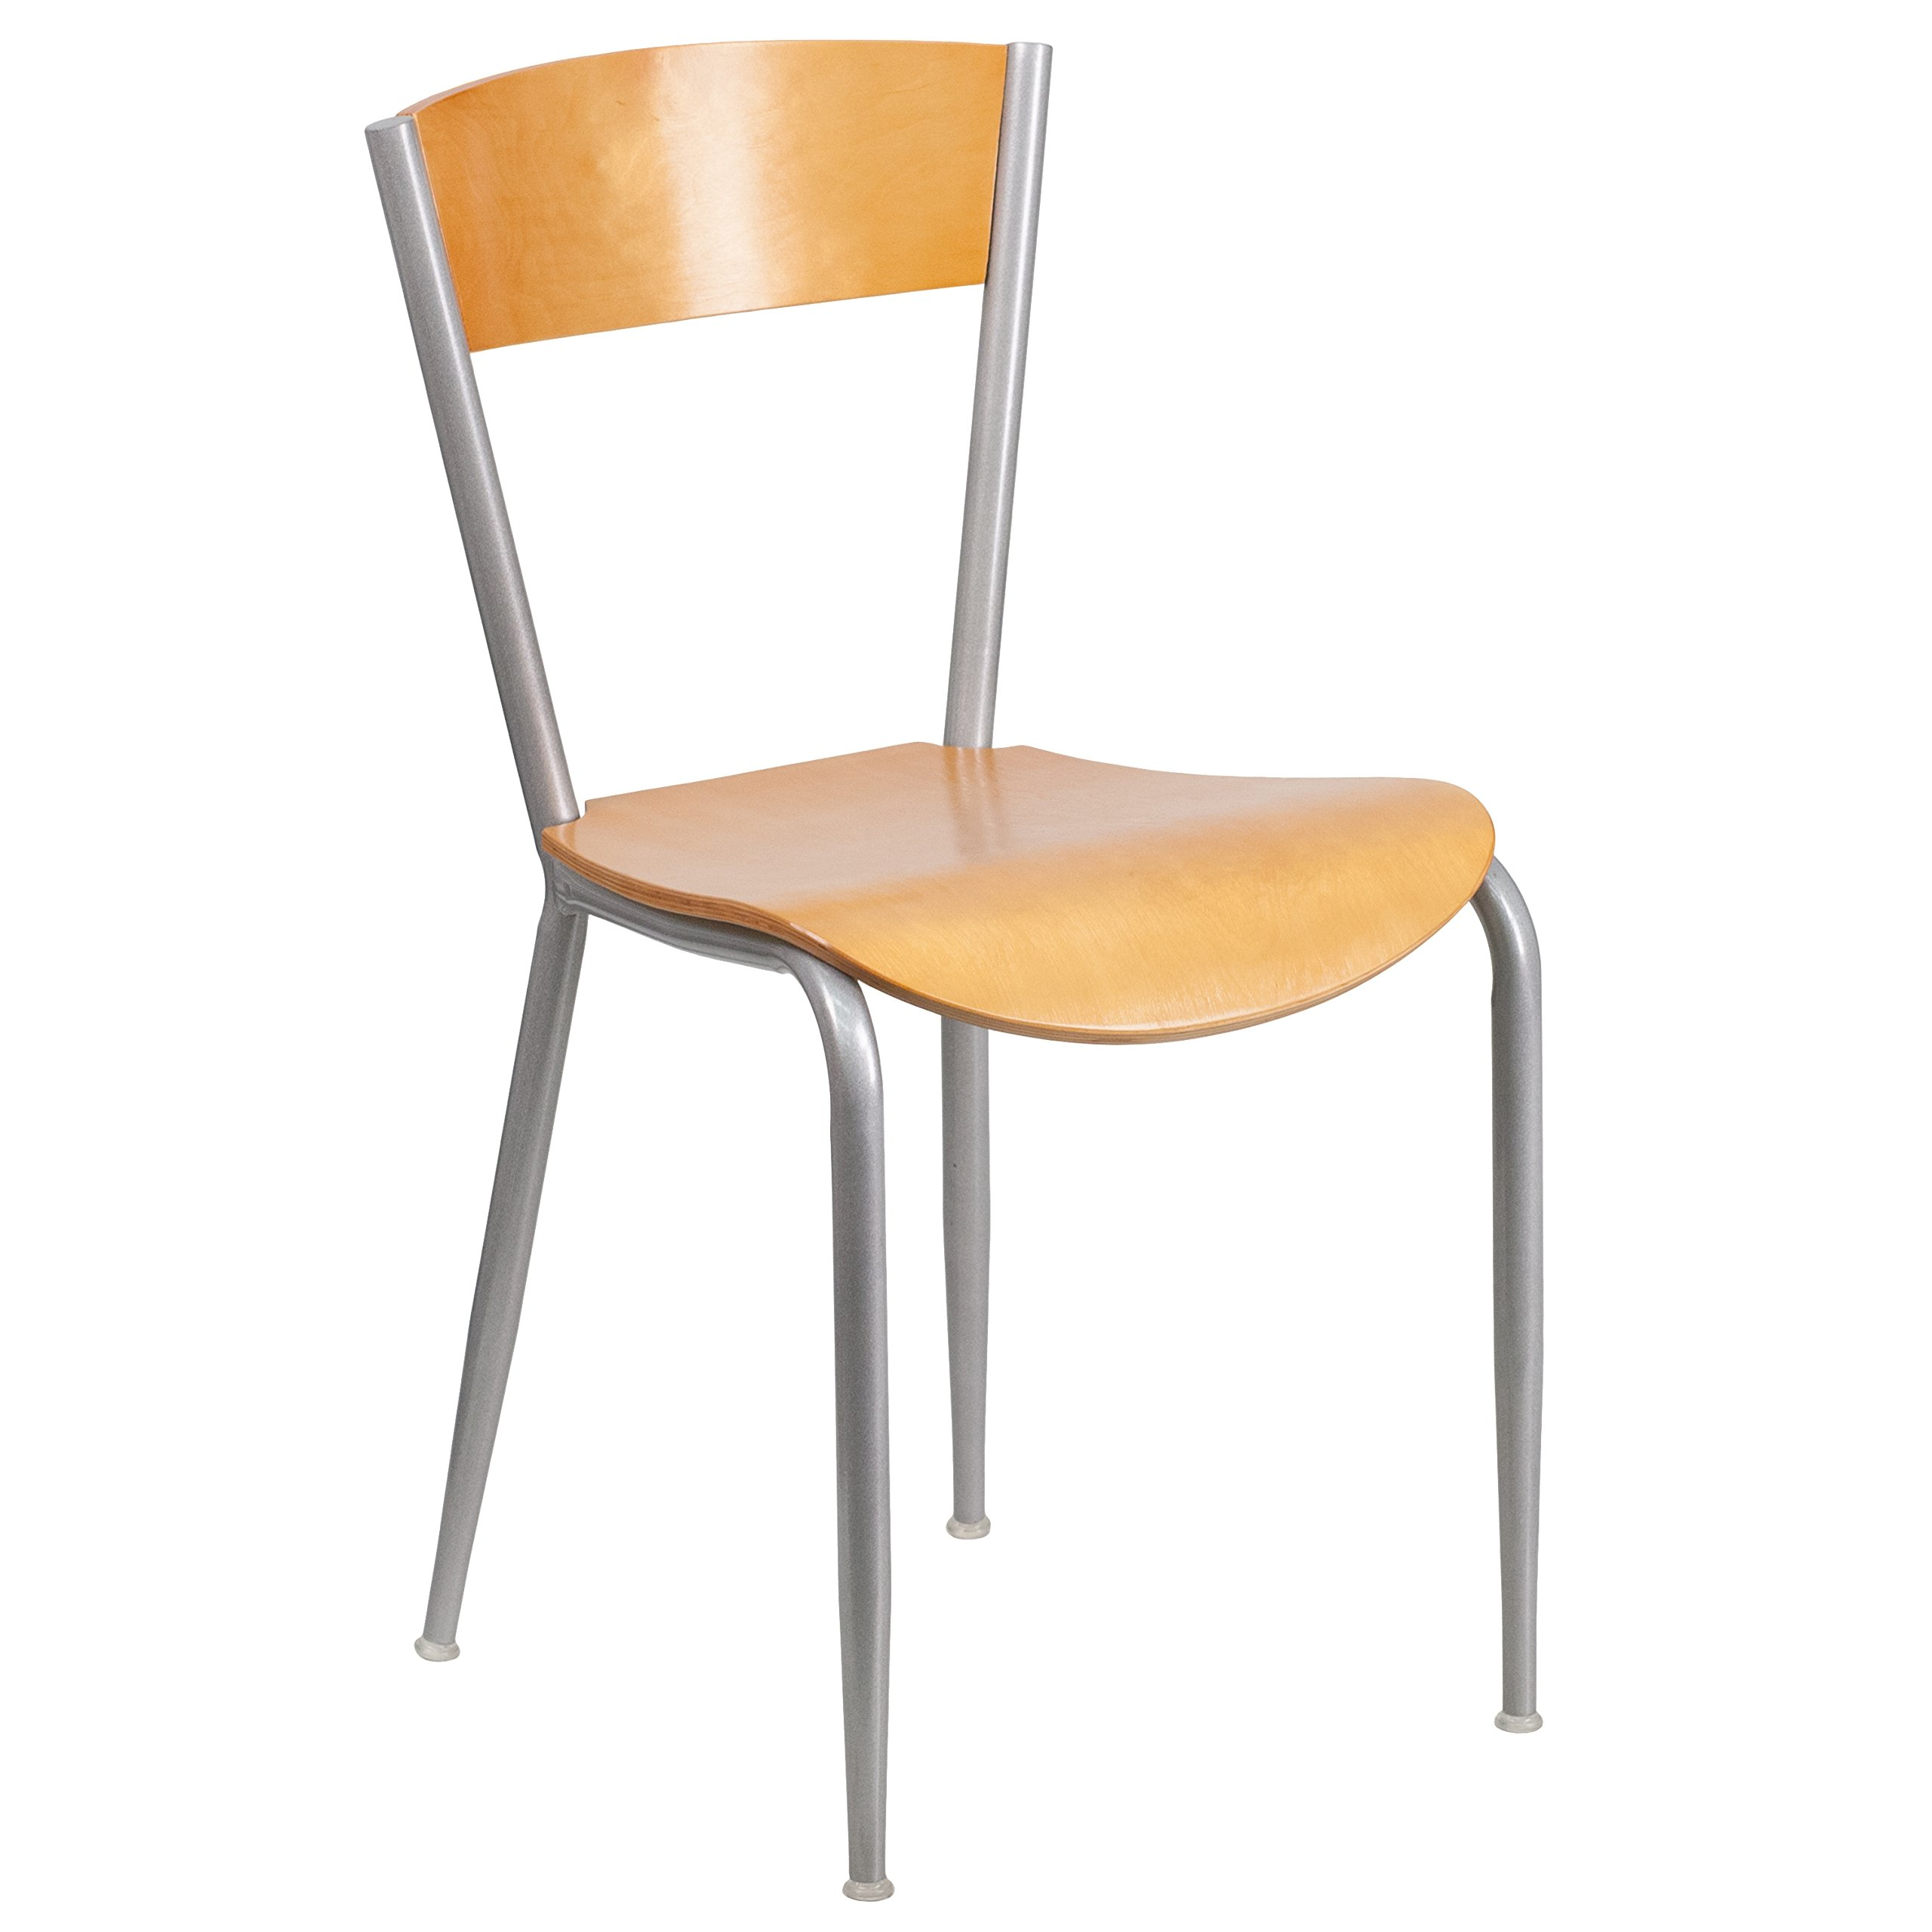 Flash Furniture Invincible Series Silver Metal Restaurant Chair - Natural Wood Back & Seat